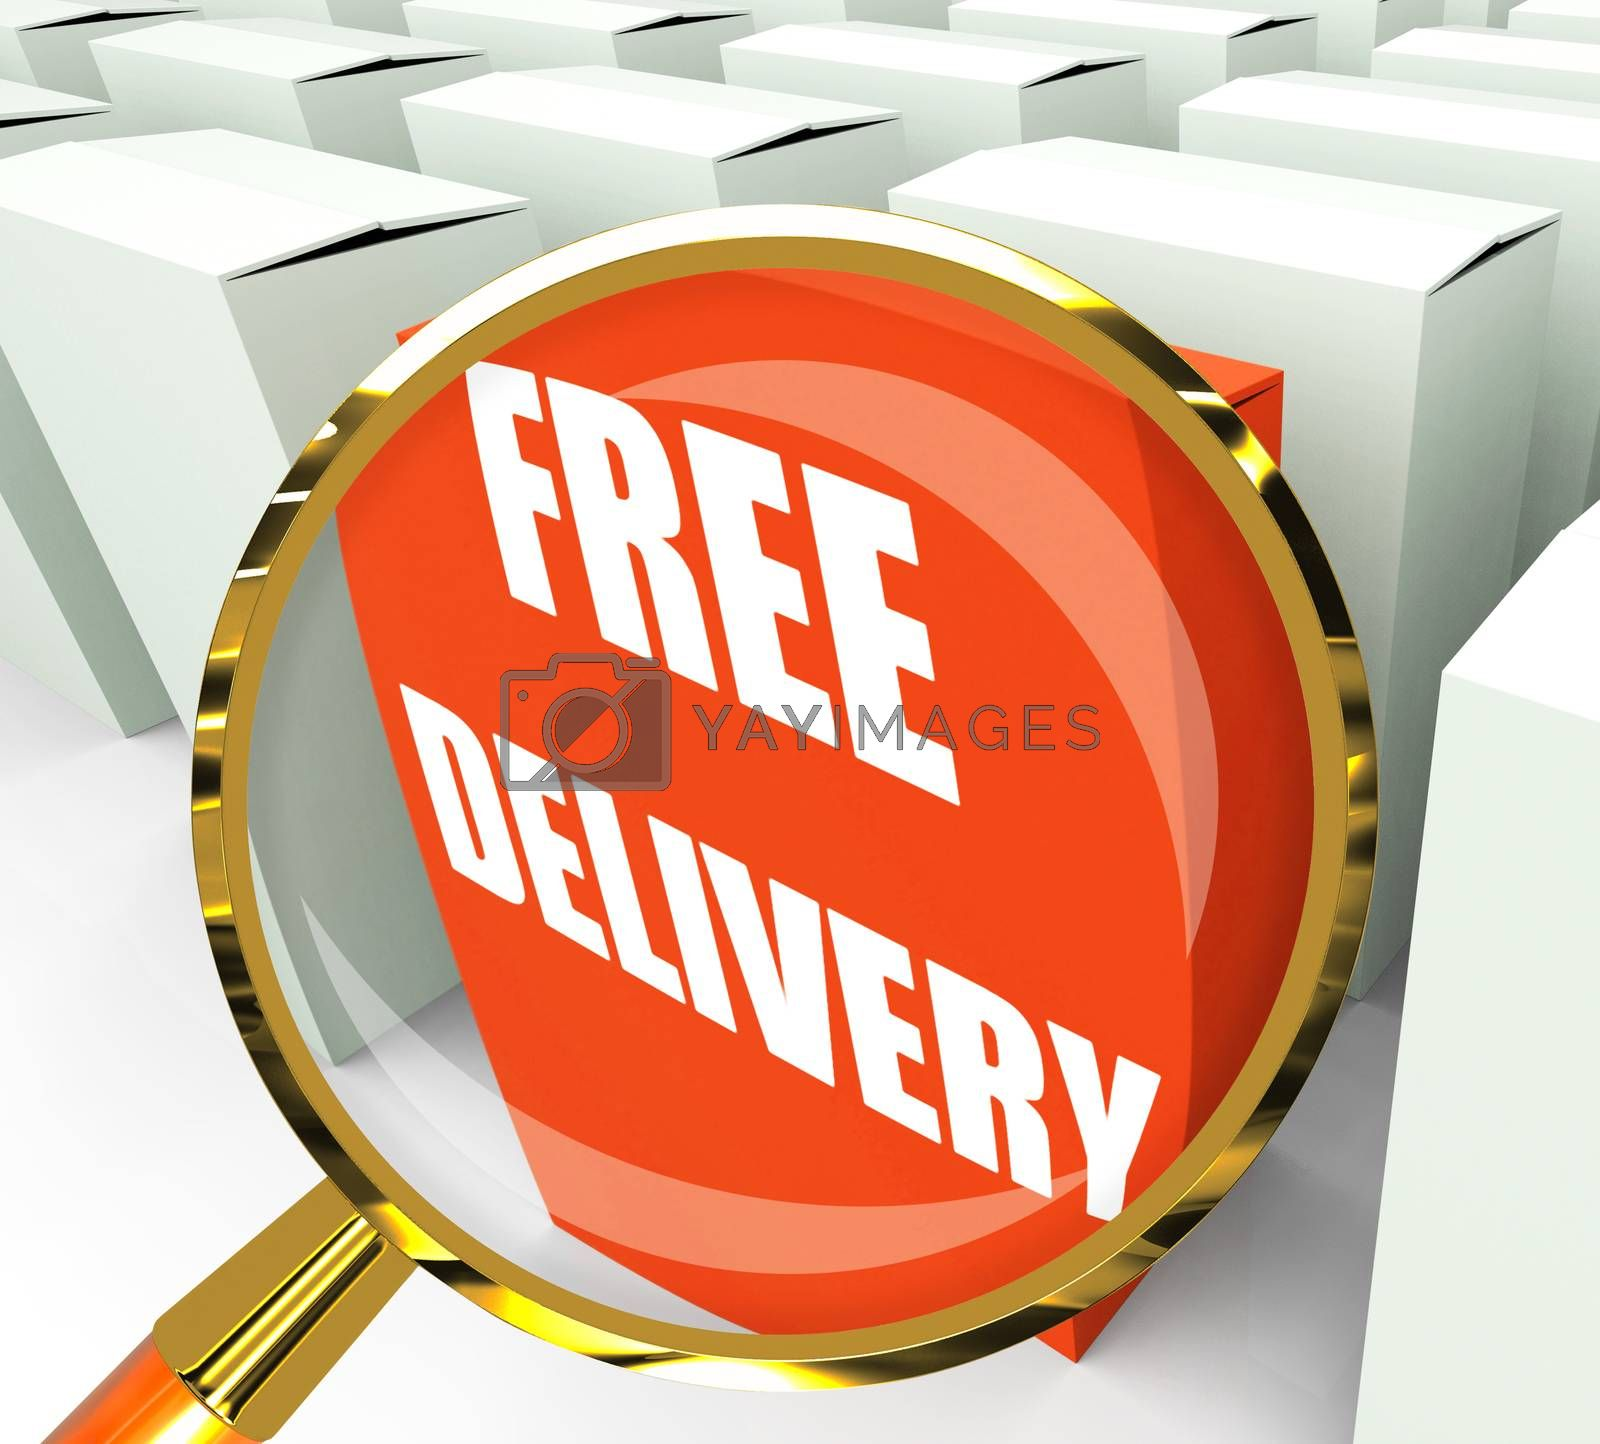 Free Delivery Sign on Packet Show No Charge To Deliver by stuartmiles